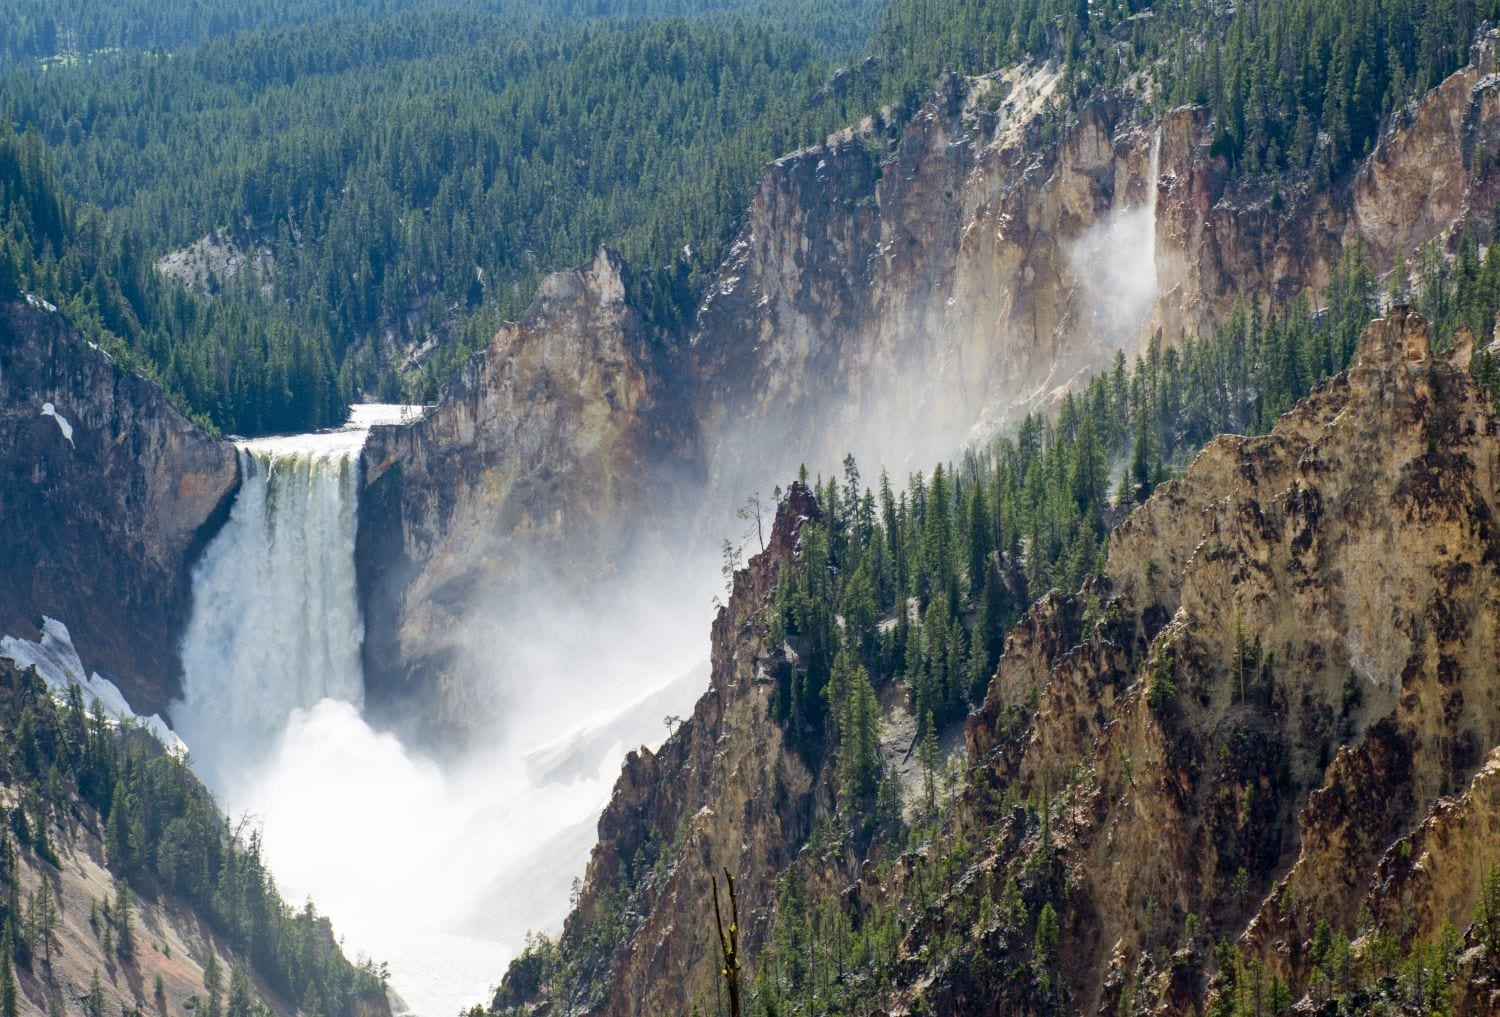 Yellowstone and Grand Teton National Parks Good Faith Experience: August 7-14, 2021